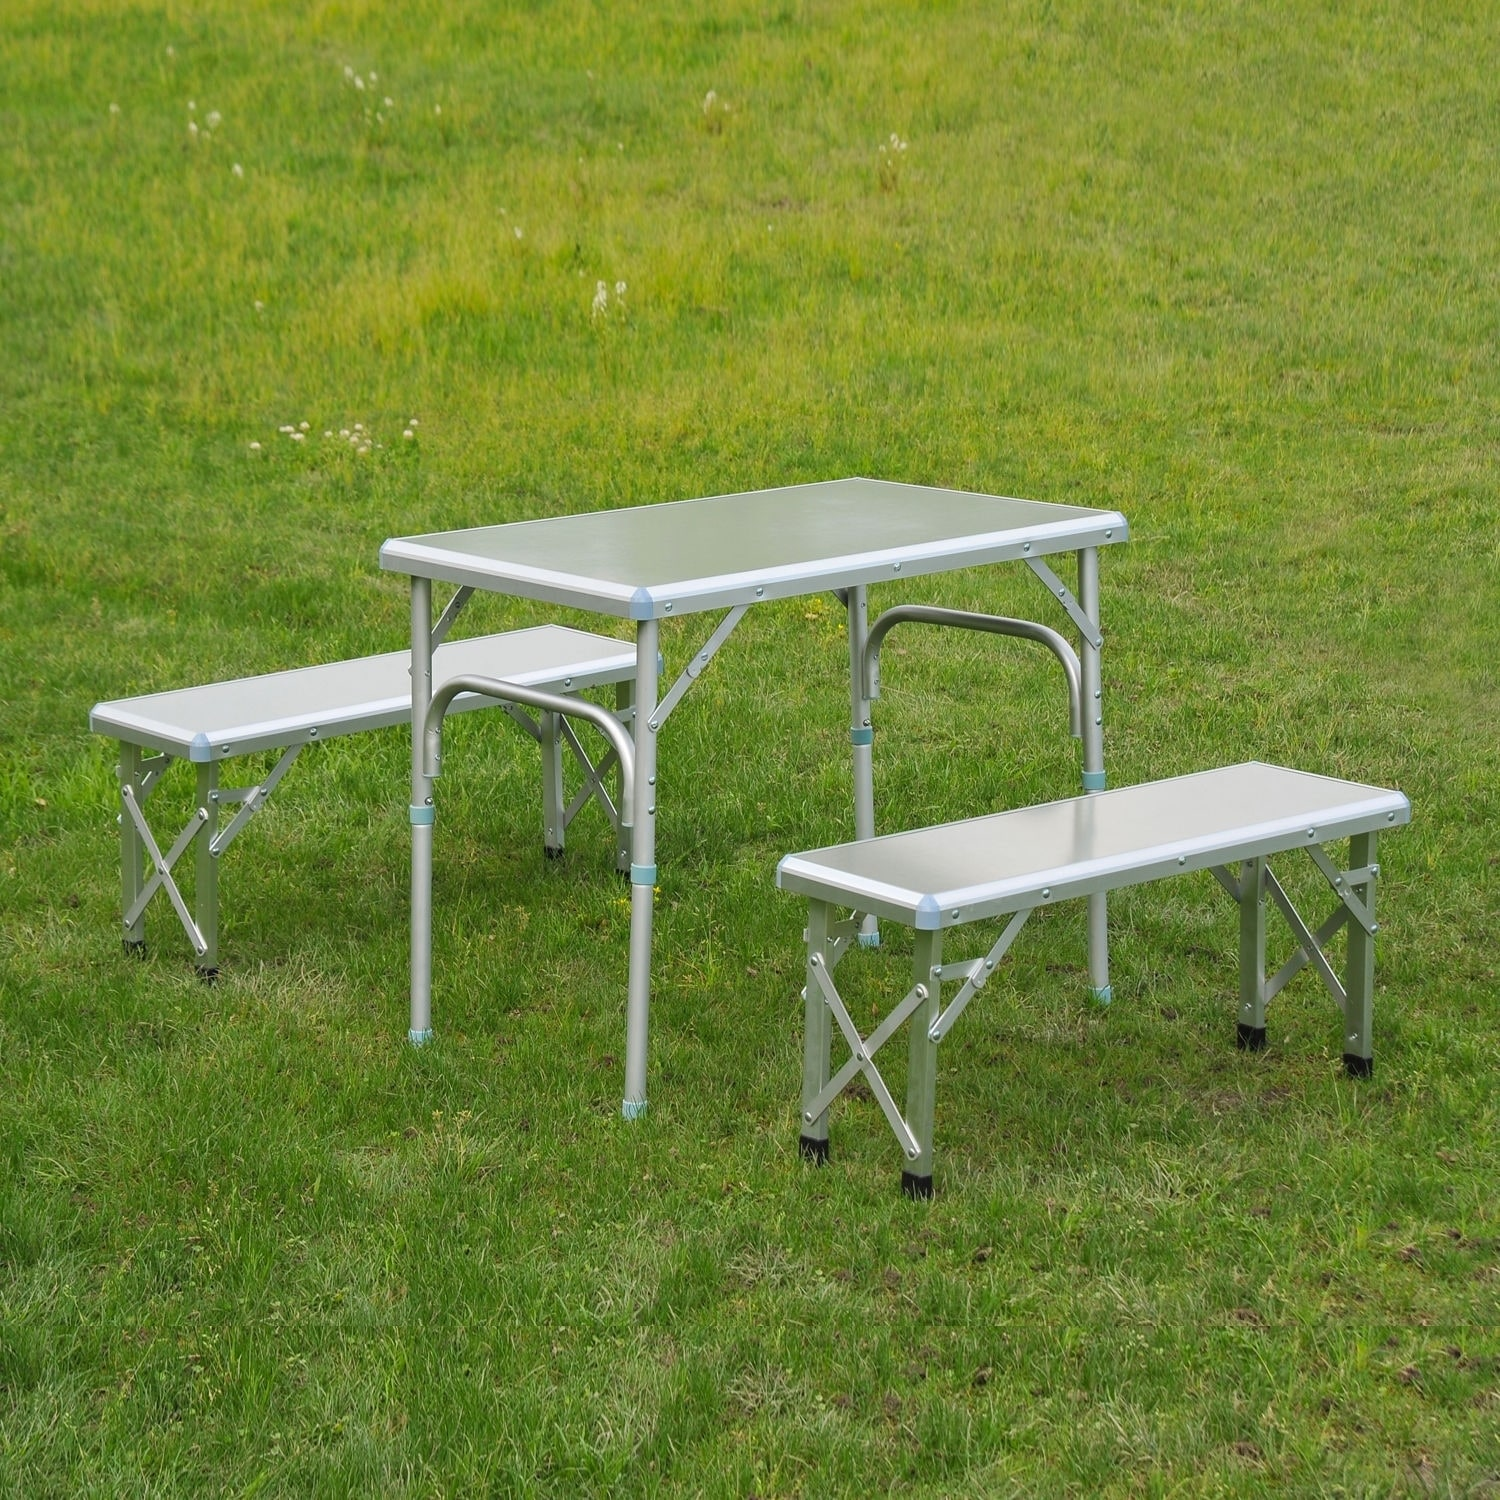 Aosom Outsunny Portable Outdoor Picnic Table with Folding...